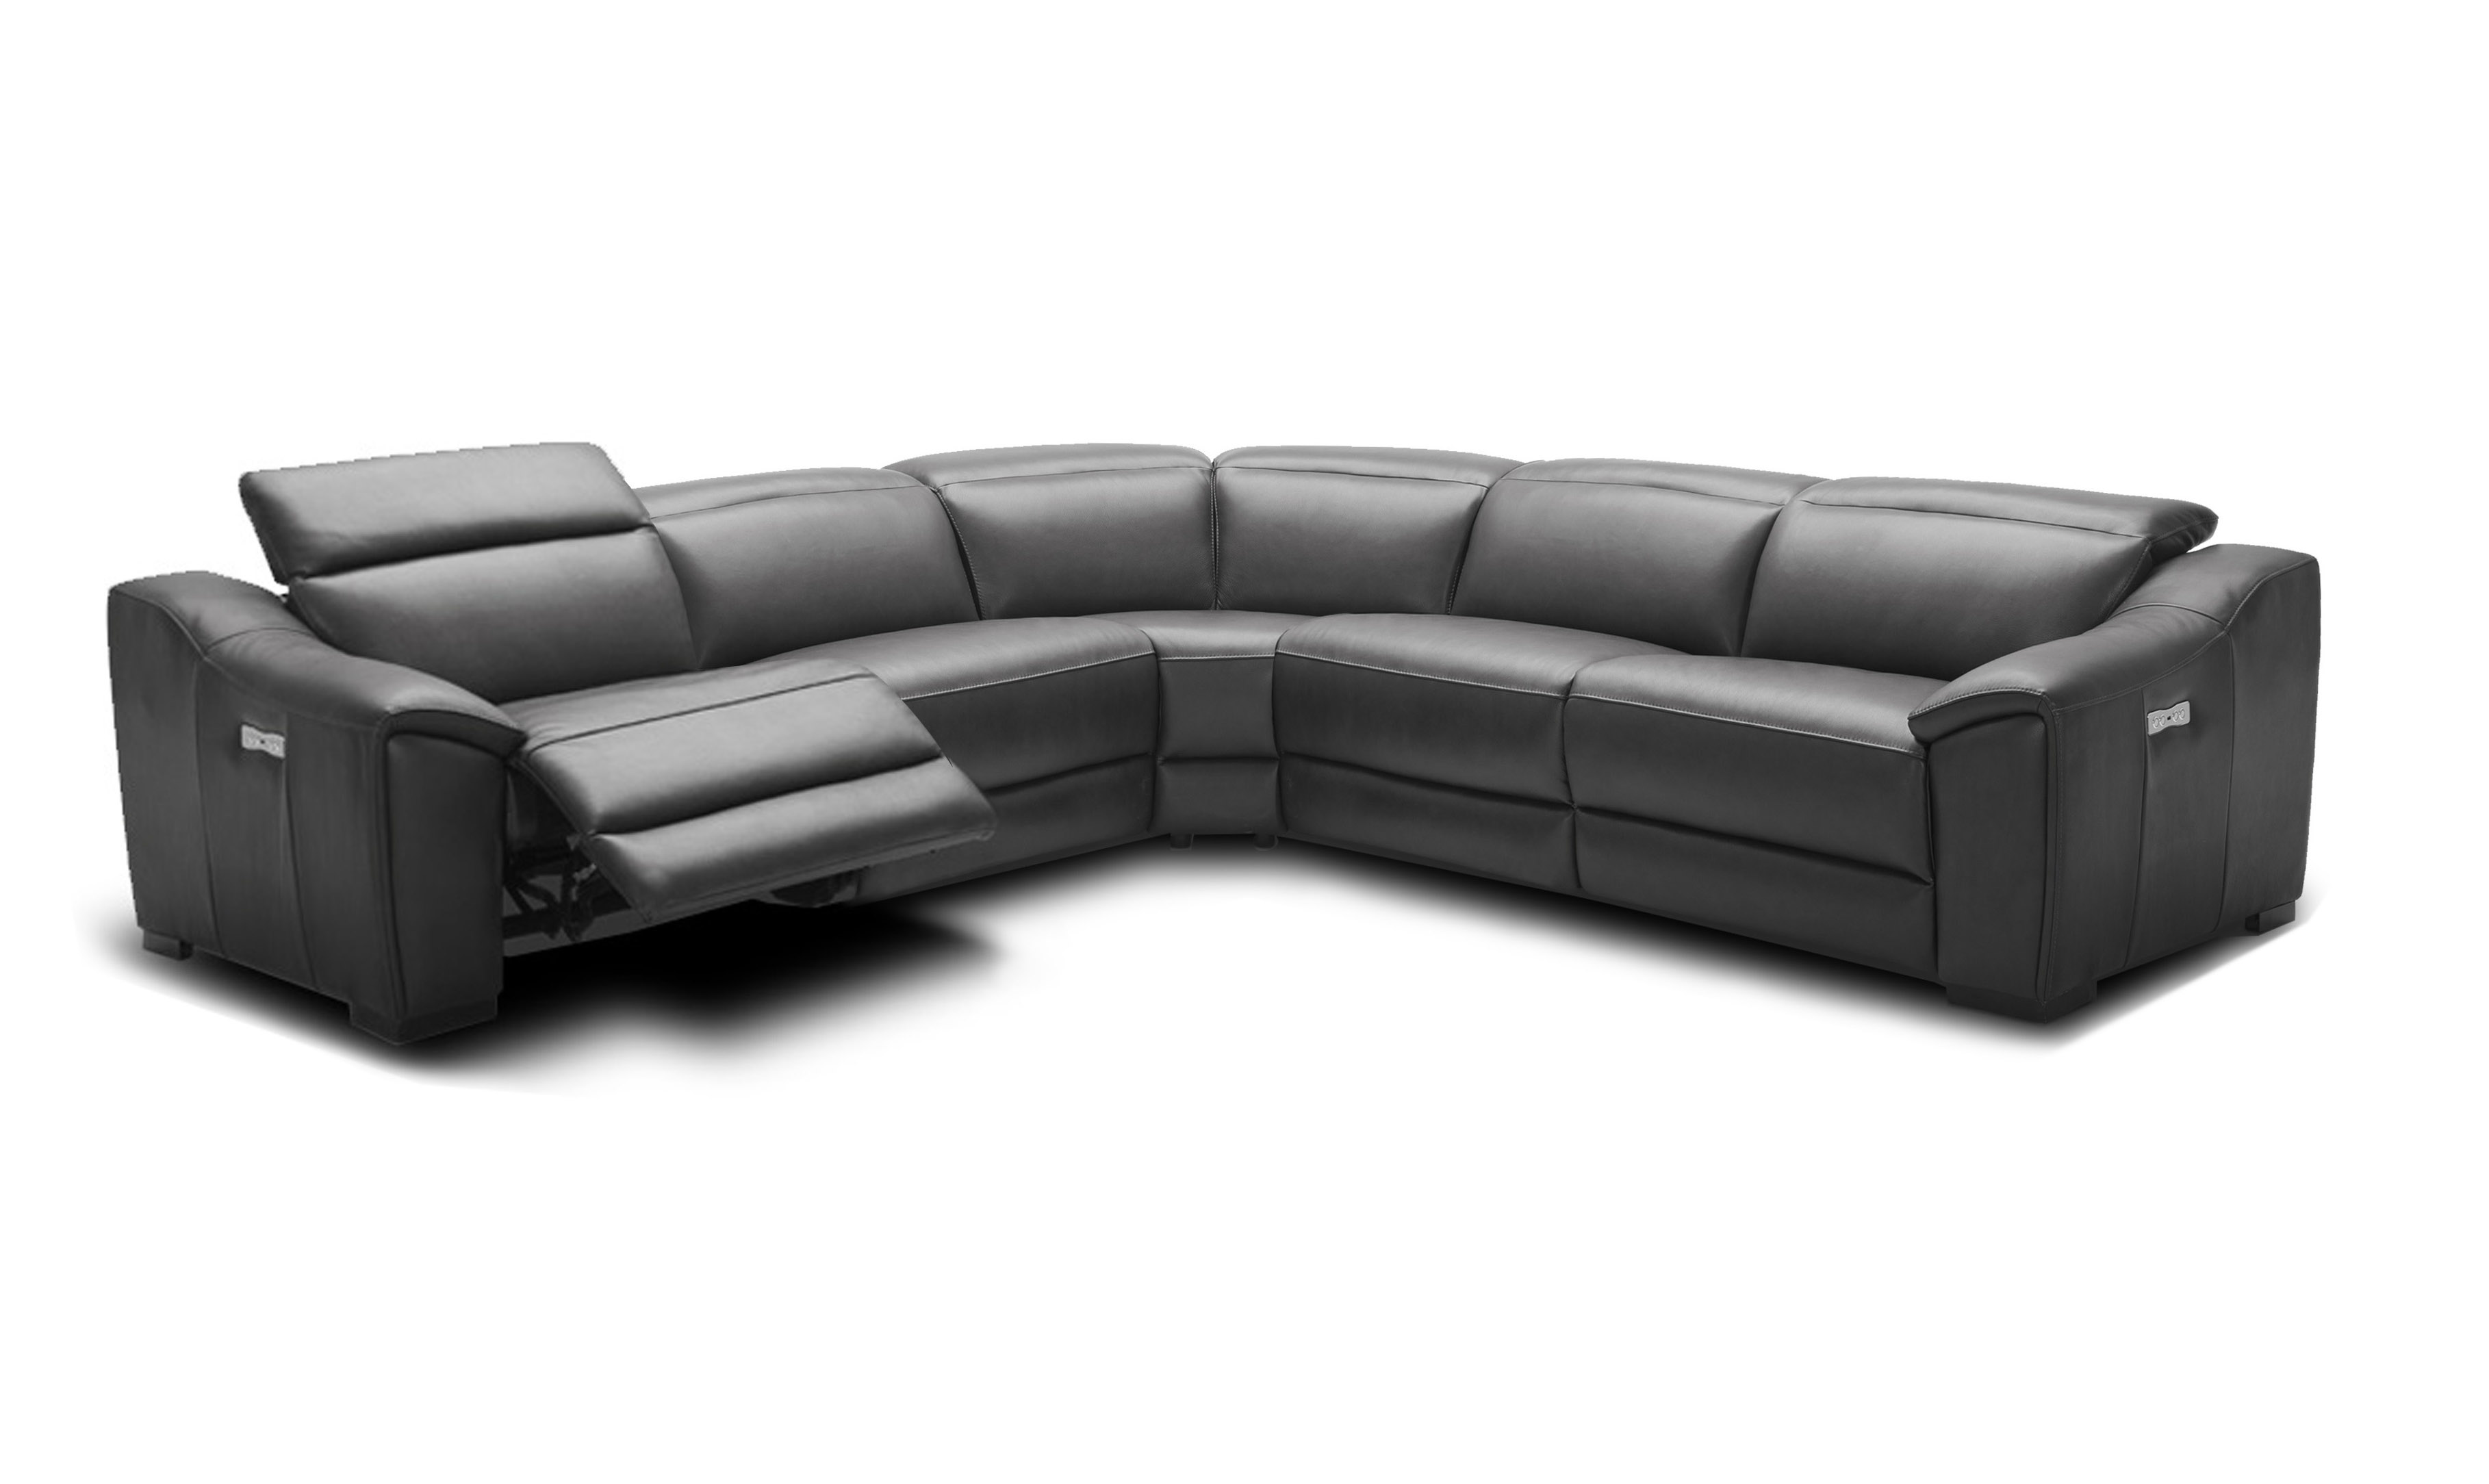 Advanced Adjustable Curved Sectional Sofa in Leather